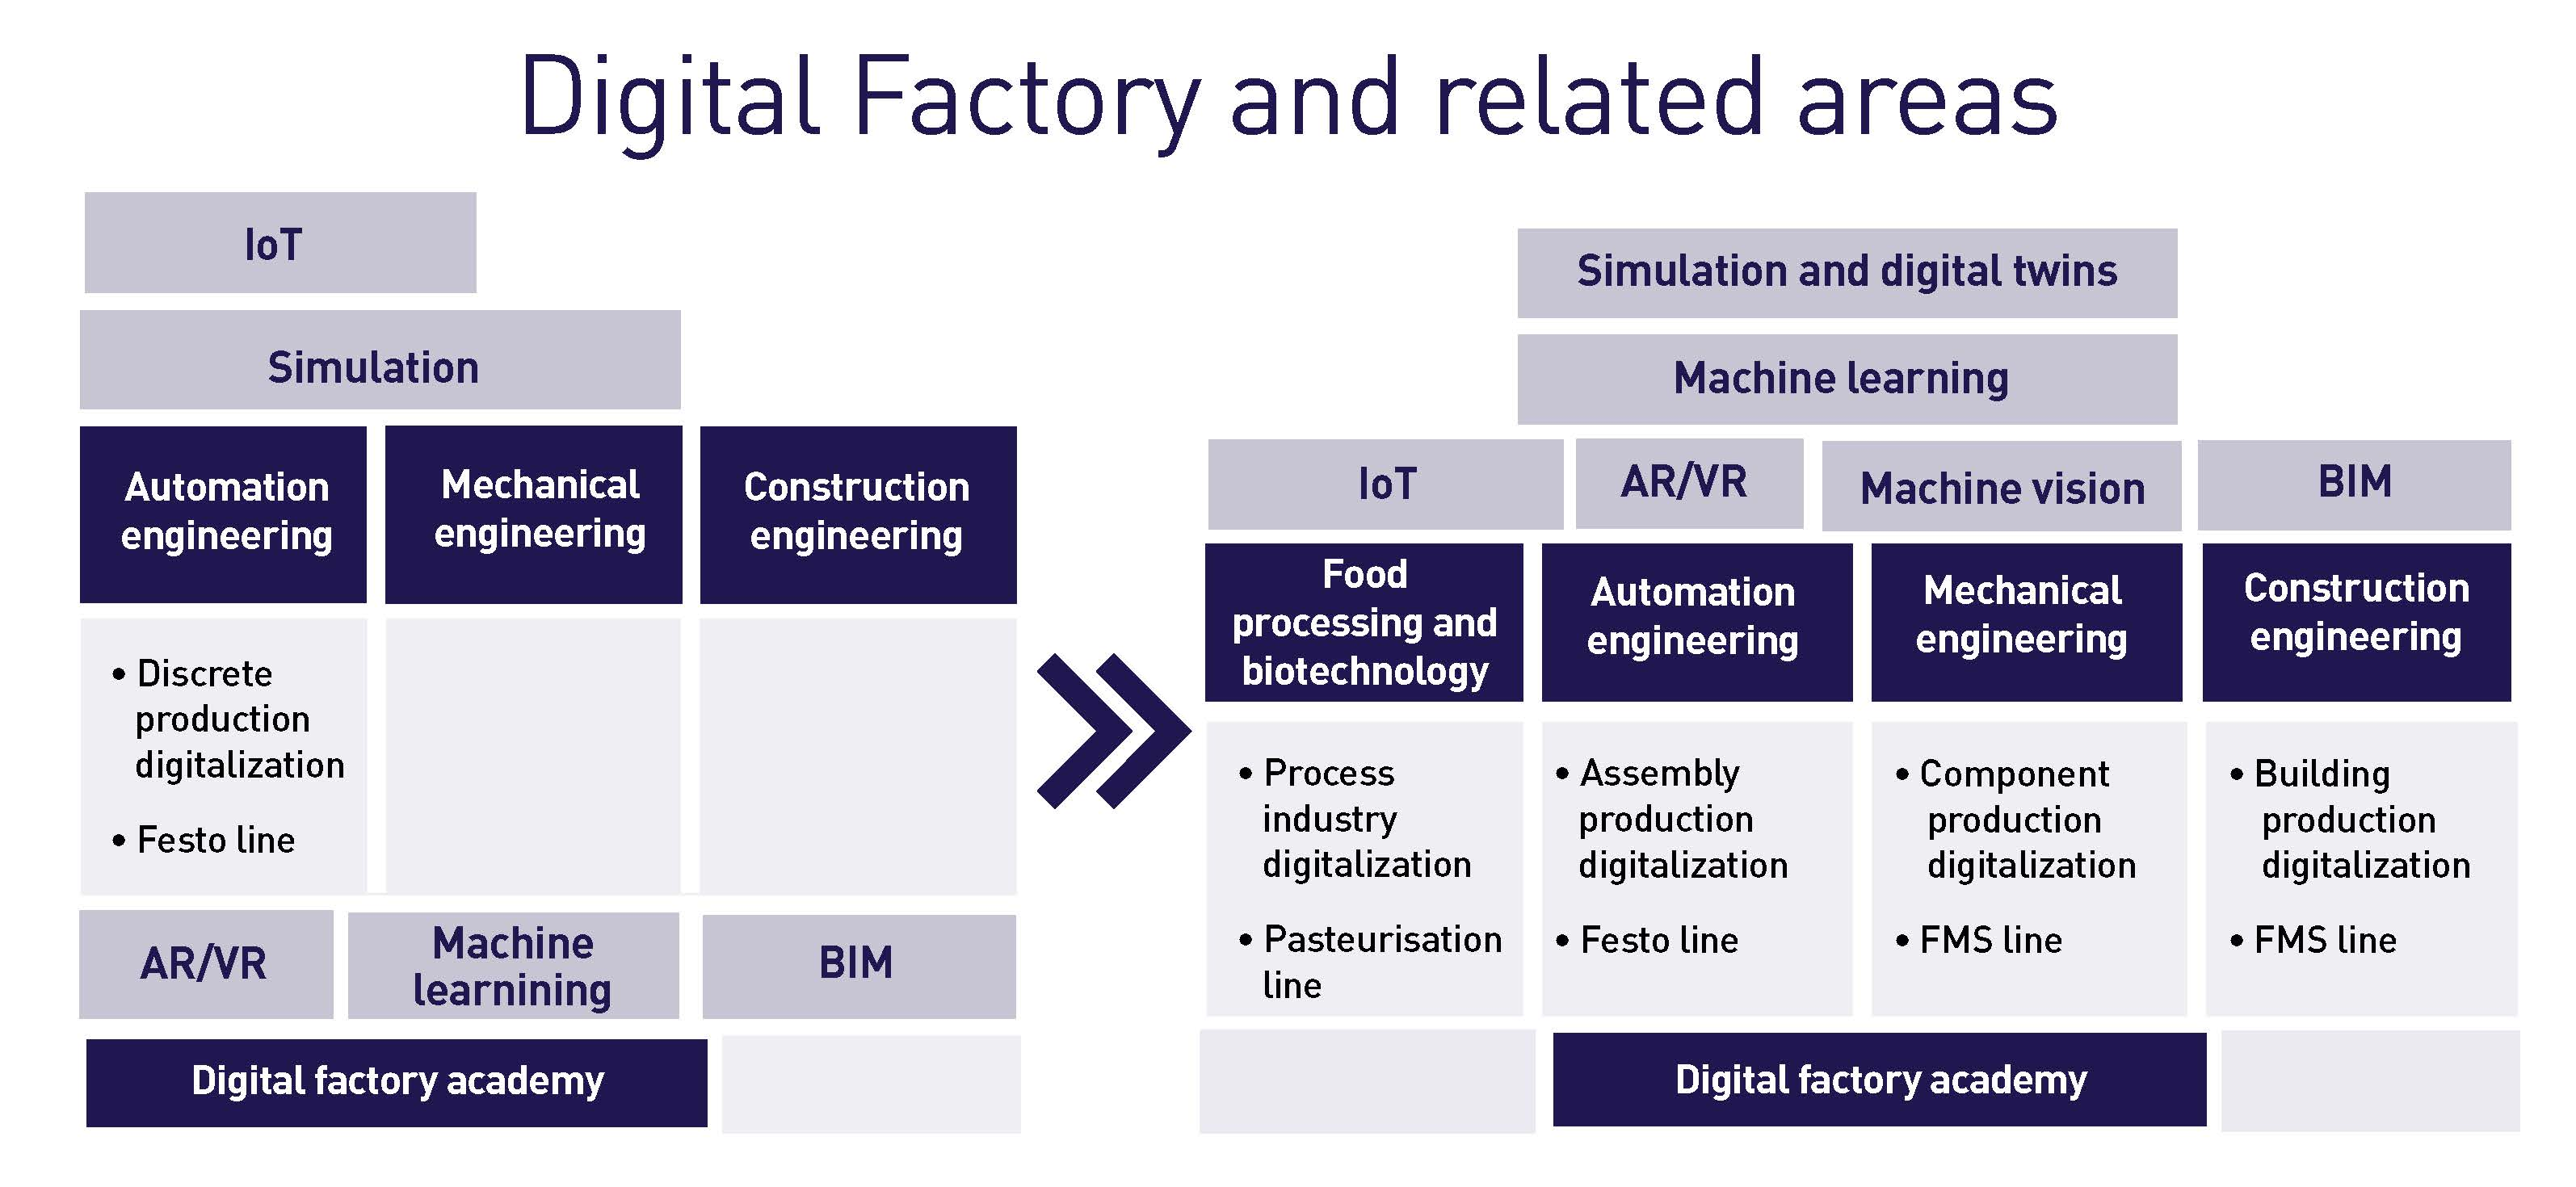 The figure is illustrating the Digital Factory and its development at SeAMK.